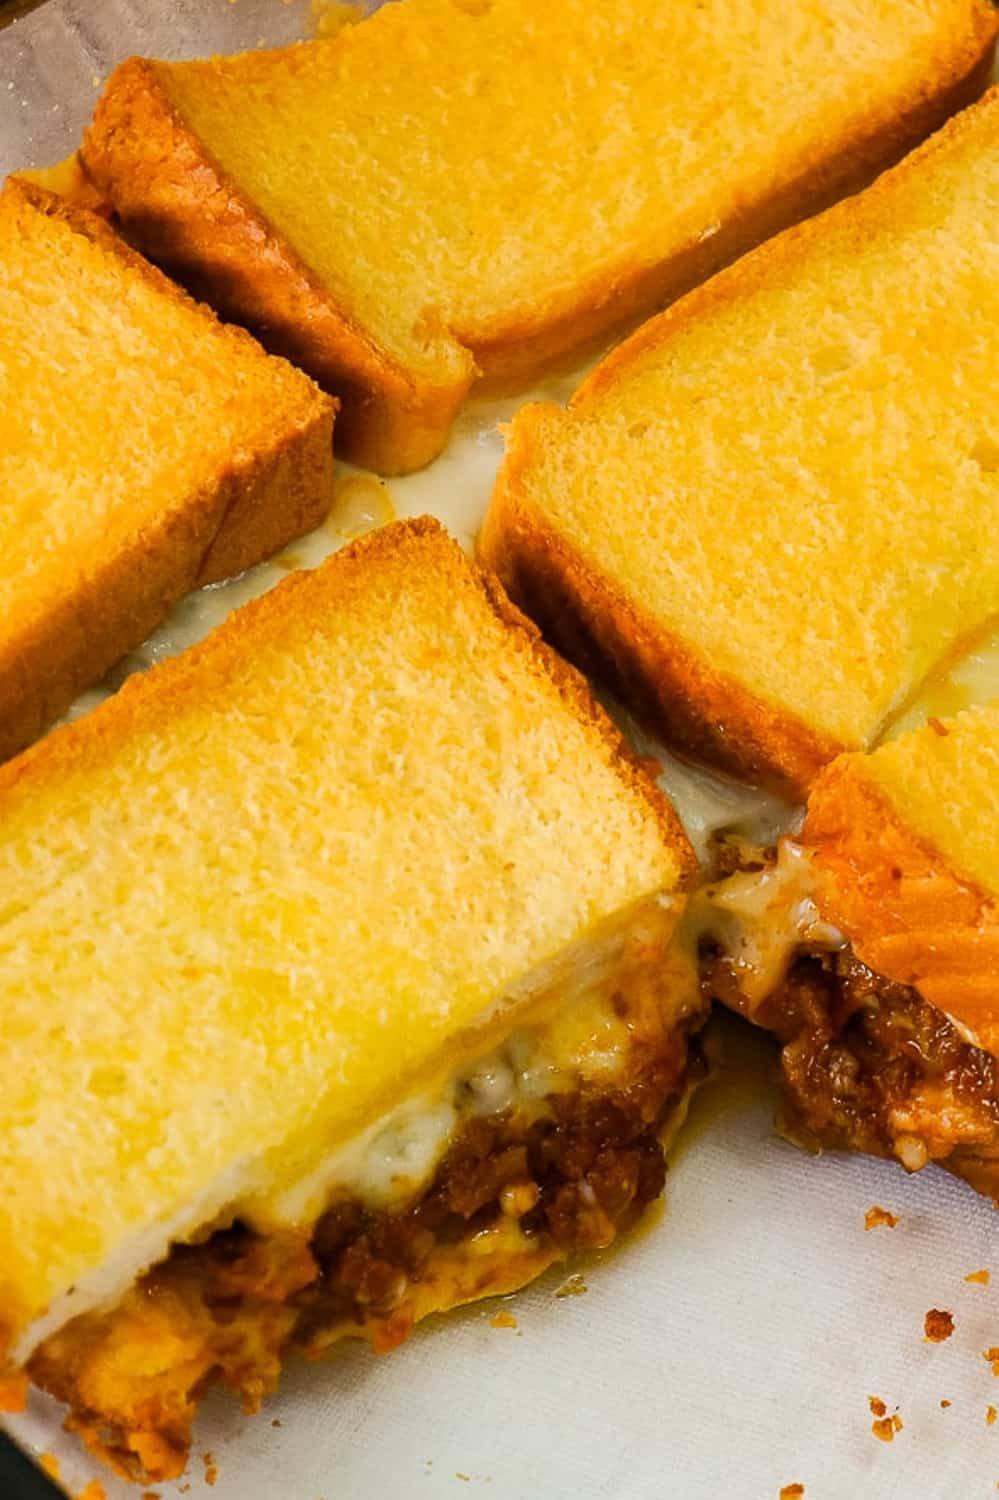 Sloppy Joe Grilled Cheese Casserole is an easy ground beef dinner recipe your whole family will love. This tasty casserole is loaded with mozzarella cheese and sloppy joe filling sandwiched between two layers of bread.